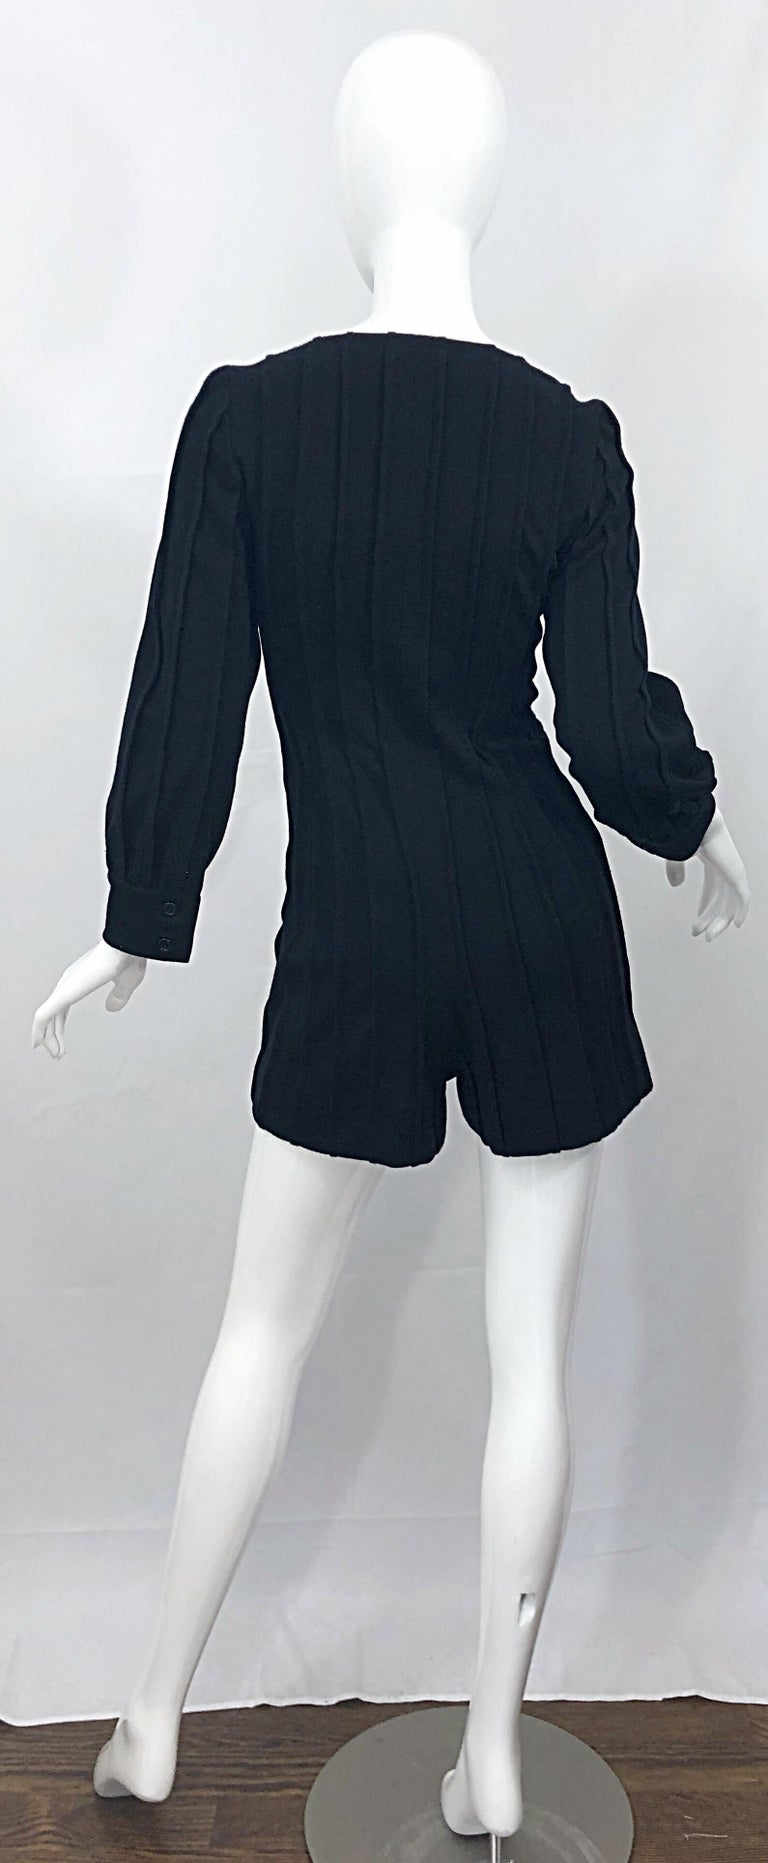 Women's Vintage Givenchy Haute Couture Black Wool Long Sleeve One Piece Romper Jumpsuit For Sale